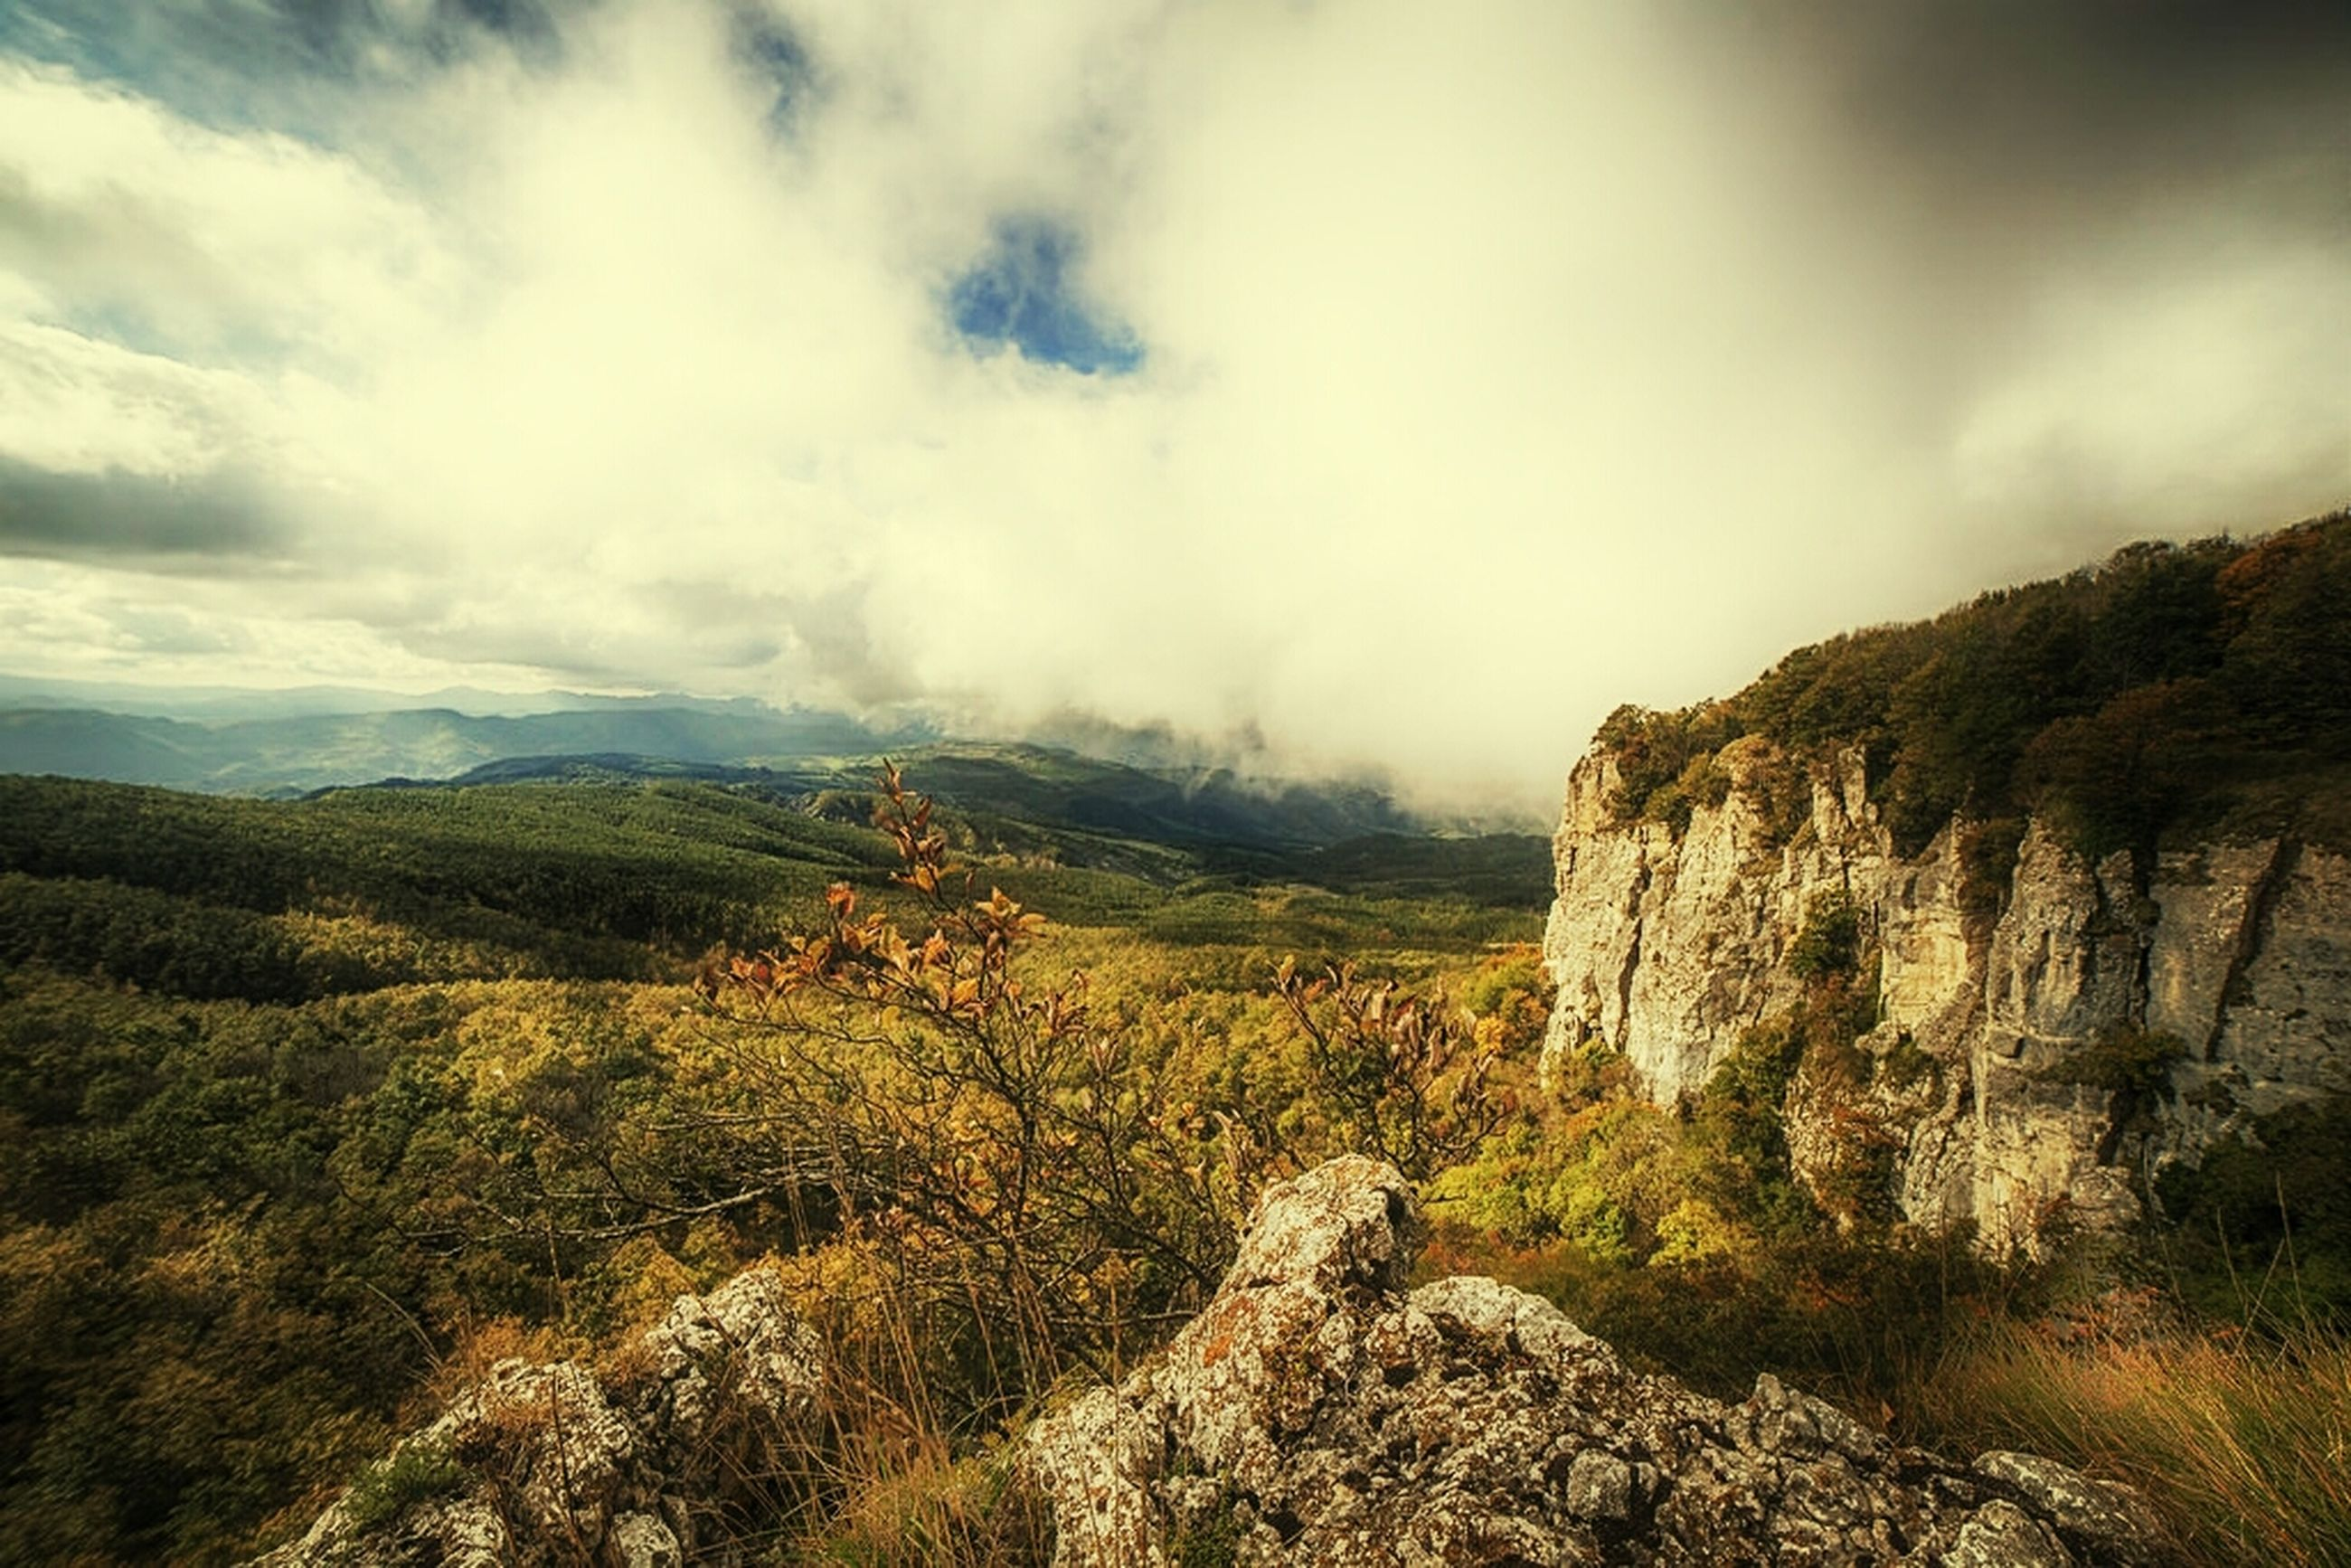 sky, tranquil scene, tranquility, scenics, beauty in nature, cloud - sky, landscape, nature, mountain, cloudy, non-urban scene, cloud, tree, growth, rock - object, rock formation, idyllic, day, remote, outdoors